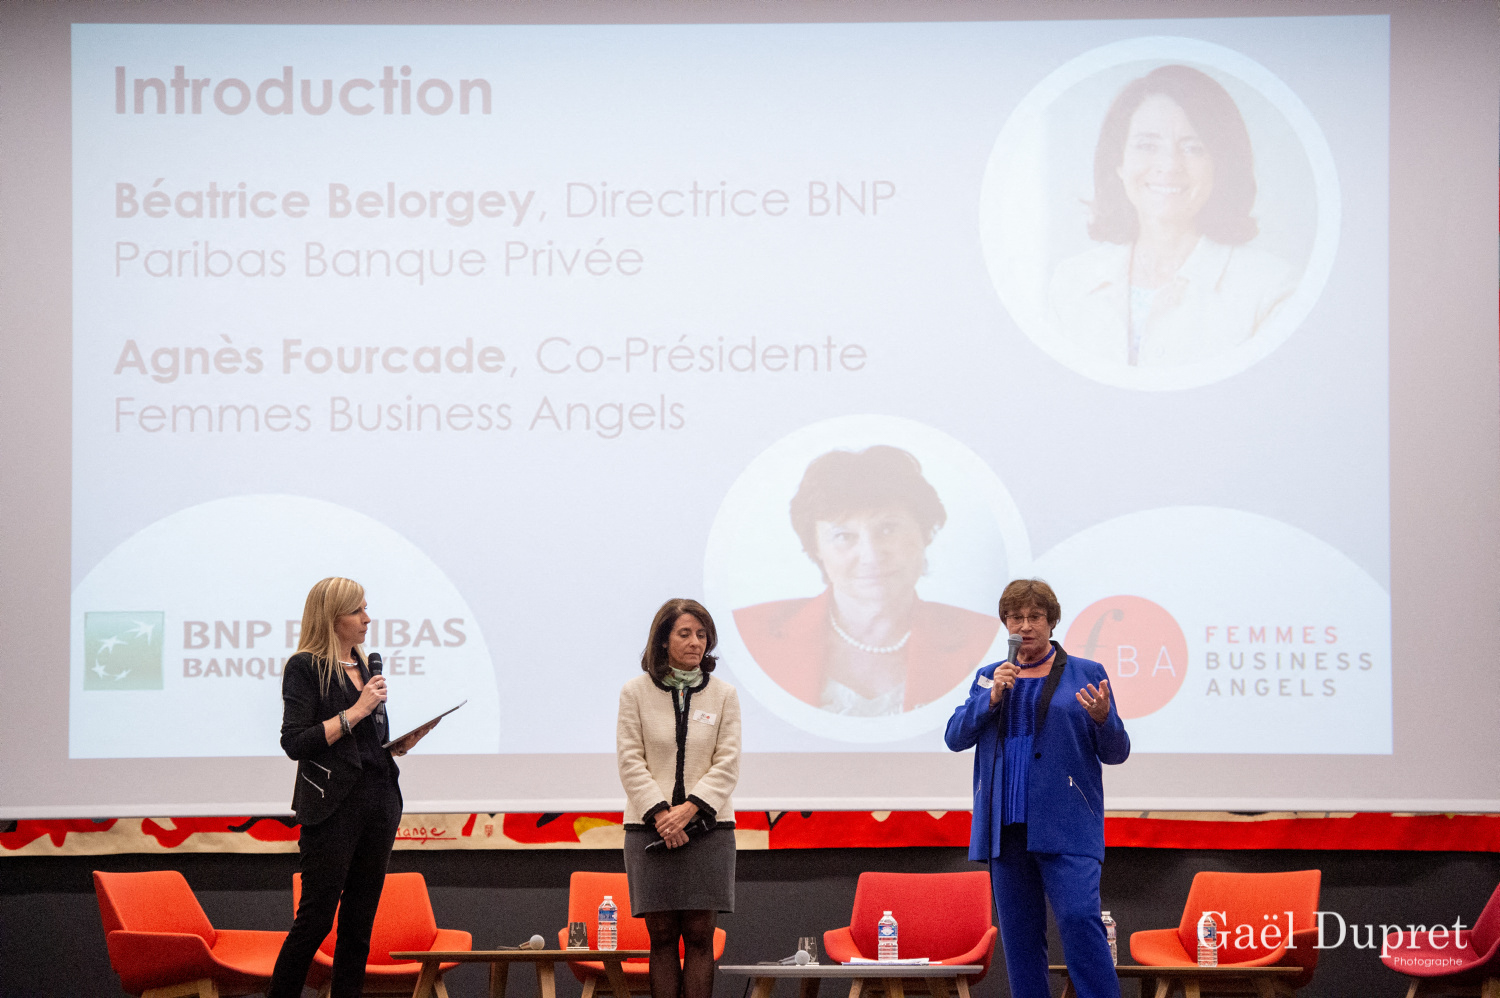 ©Gaël Dupret, France, Paris le 2018-11-15 : 2ème édition des WINDAY Paris par FBA - Femmes Business Angels. Photo : Isabelle GOUNIN-LEVY, Journaliste économique sur LCI,  Béatrice BELORGEY, Directrice BNP Paribas Banque Privée et Agnès FOURCADE, Co-Présidente de Femmes Business Angels.   Isabelle GOUNIN-LEVY, Economic Journalist on LCI, Beatrice BELORGEY, Director BNP Paribas Private Banking and Agnès FOURCADE, Co-President of Women Business Angels.